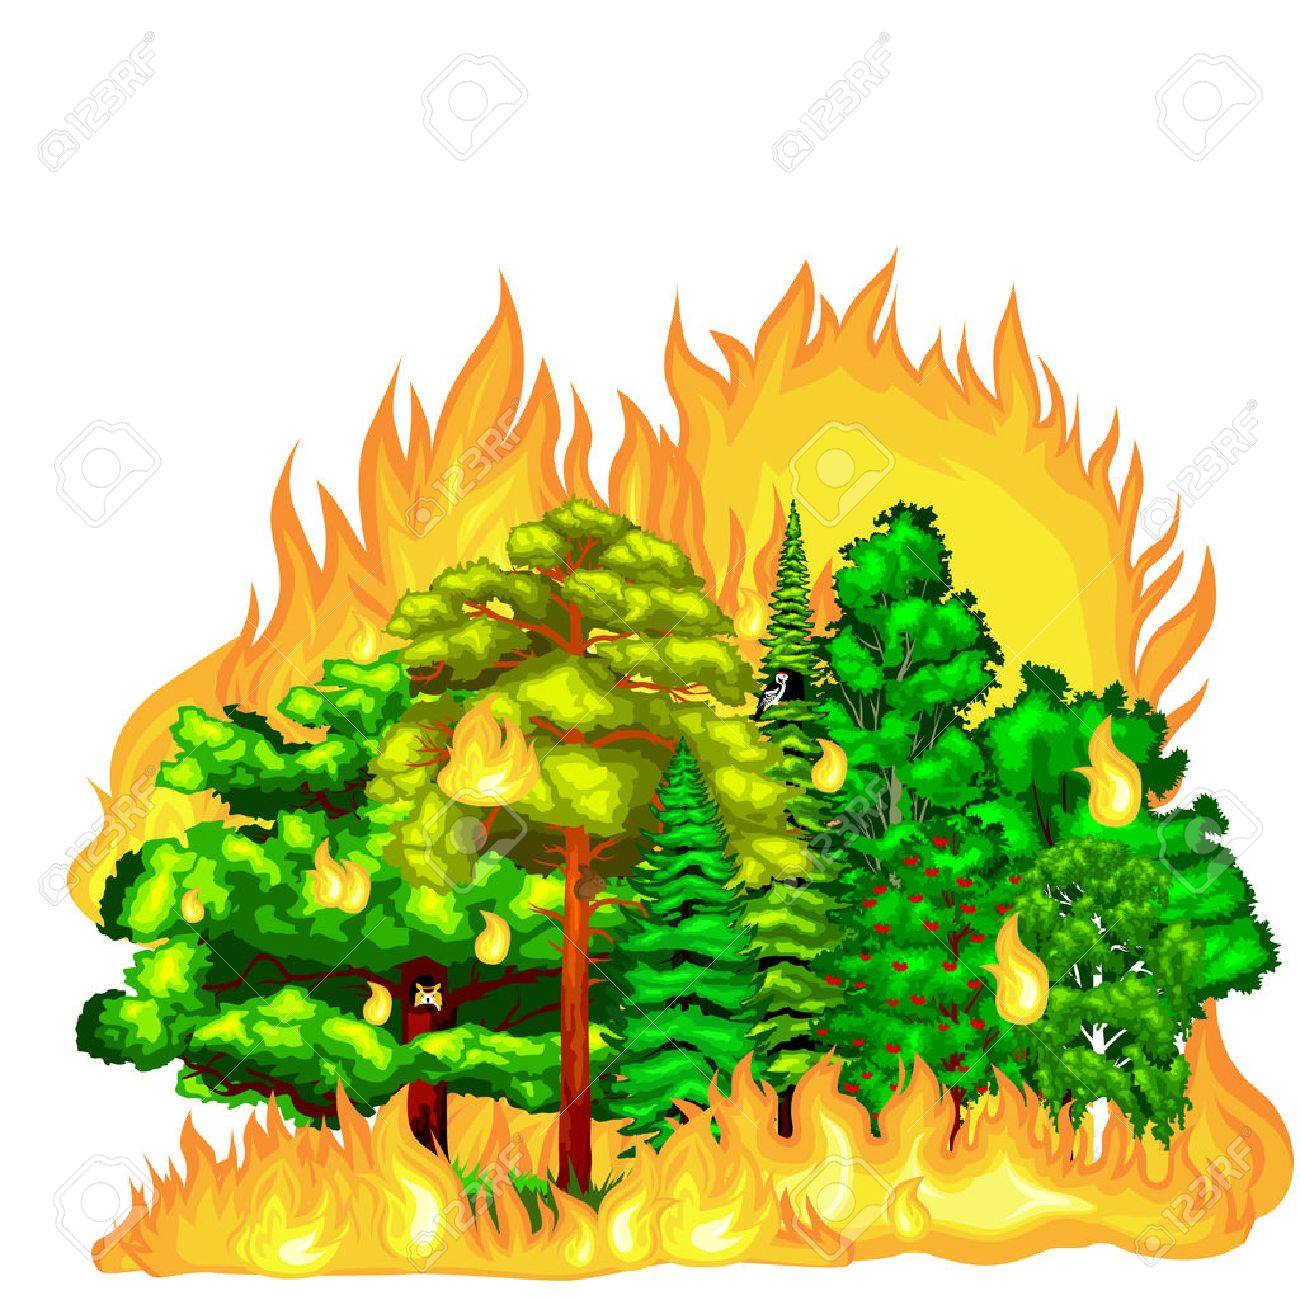 Station . Fire clipart forest fire